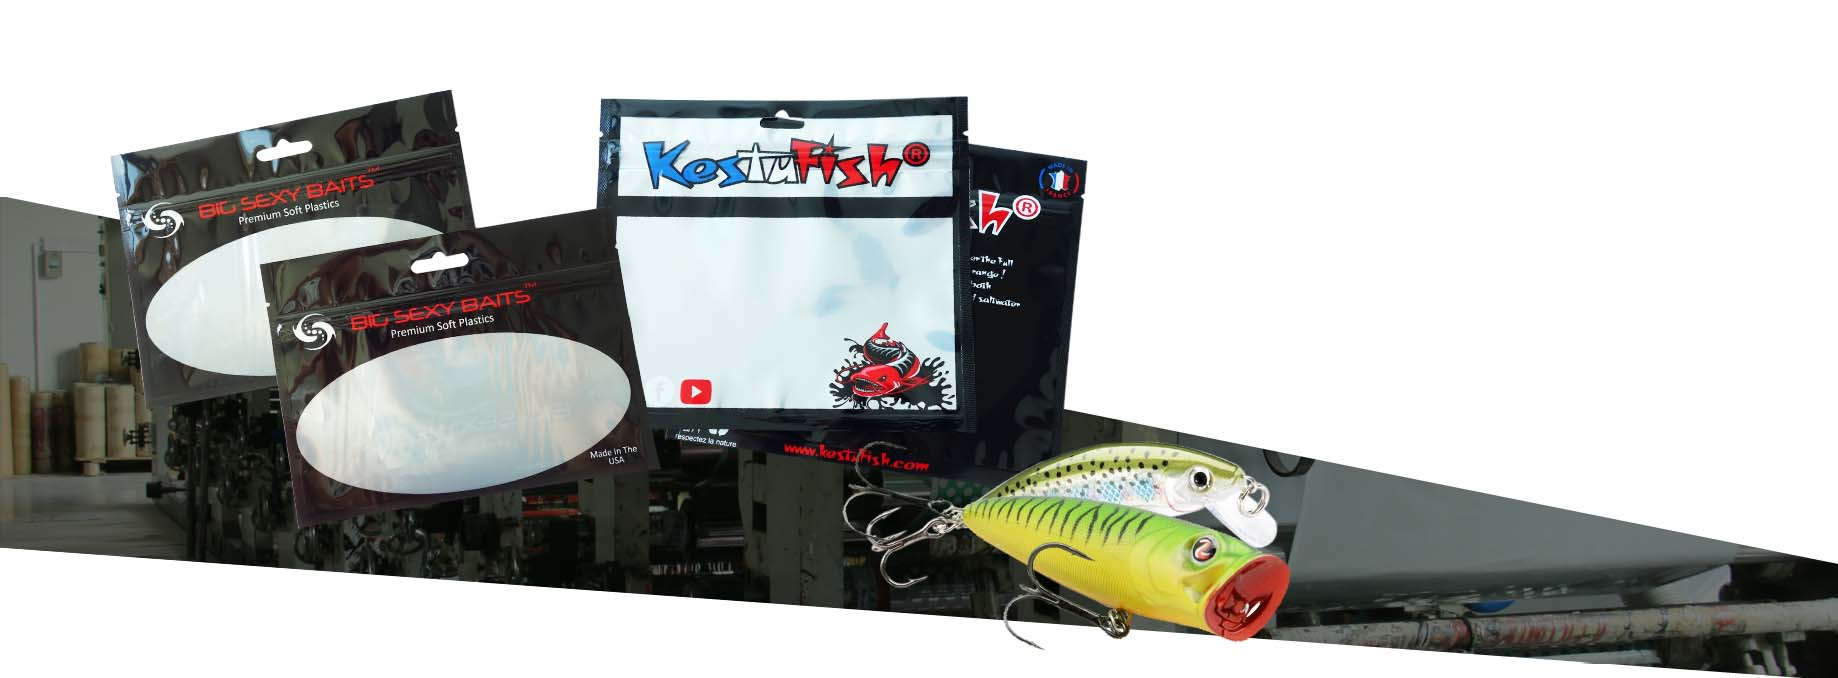 fish lure zipper bags